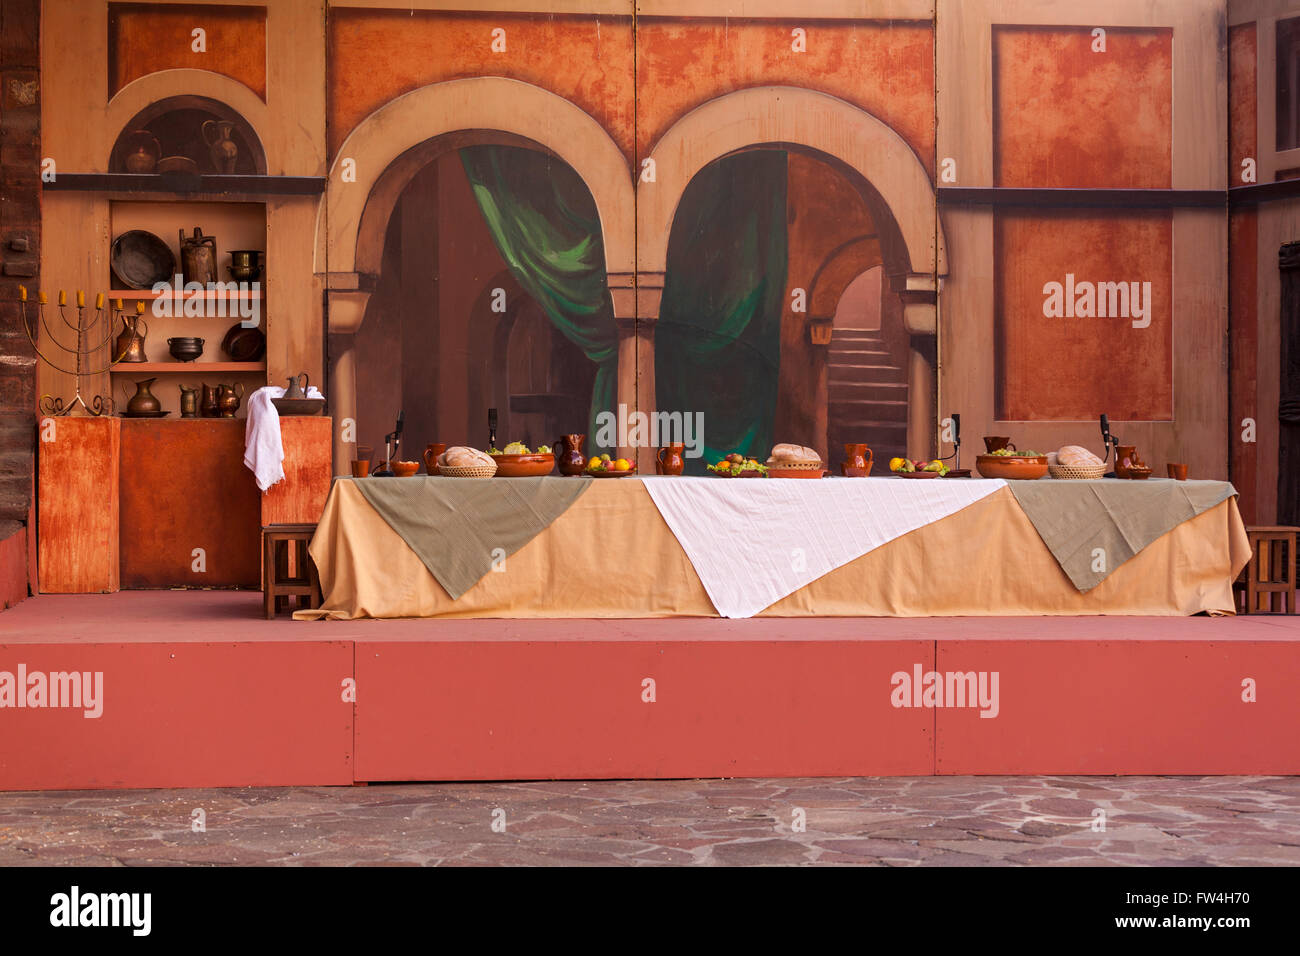 Scenery set up for the Last Supper scene in the Passion Play, Adeje, Tenerife, Canary Islands, Spain.Representacion - Stock Image